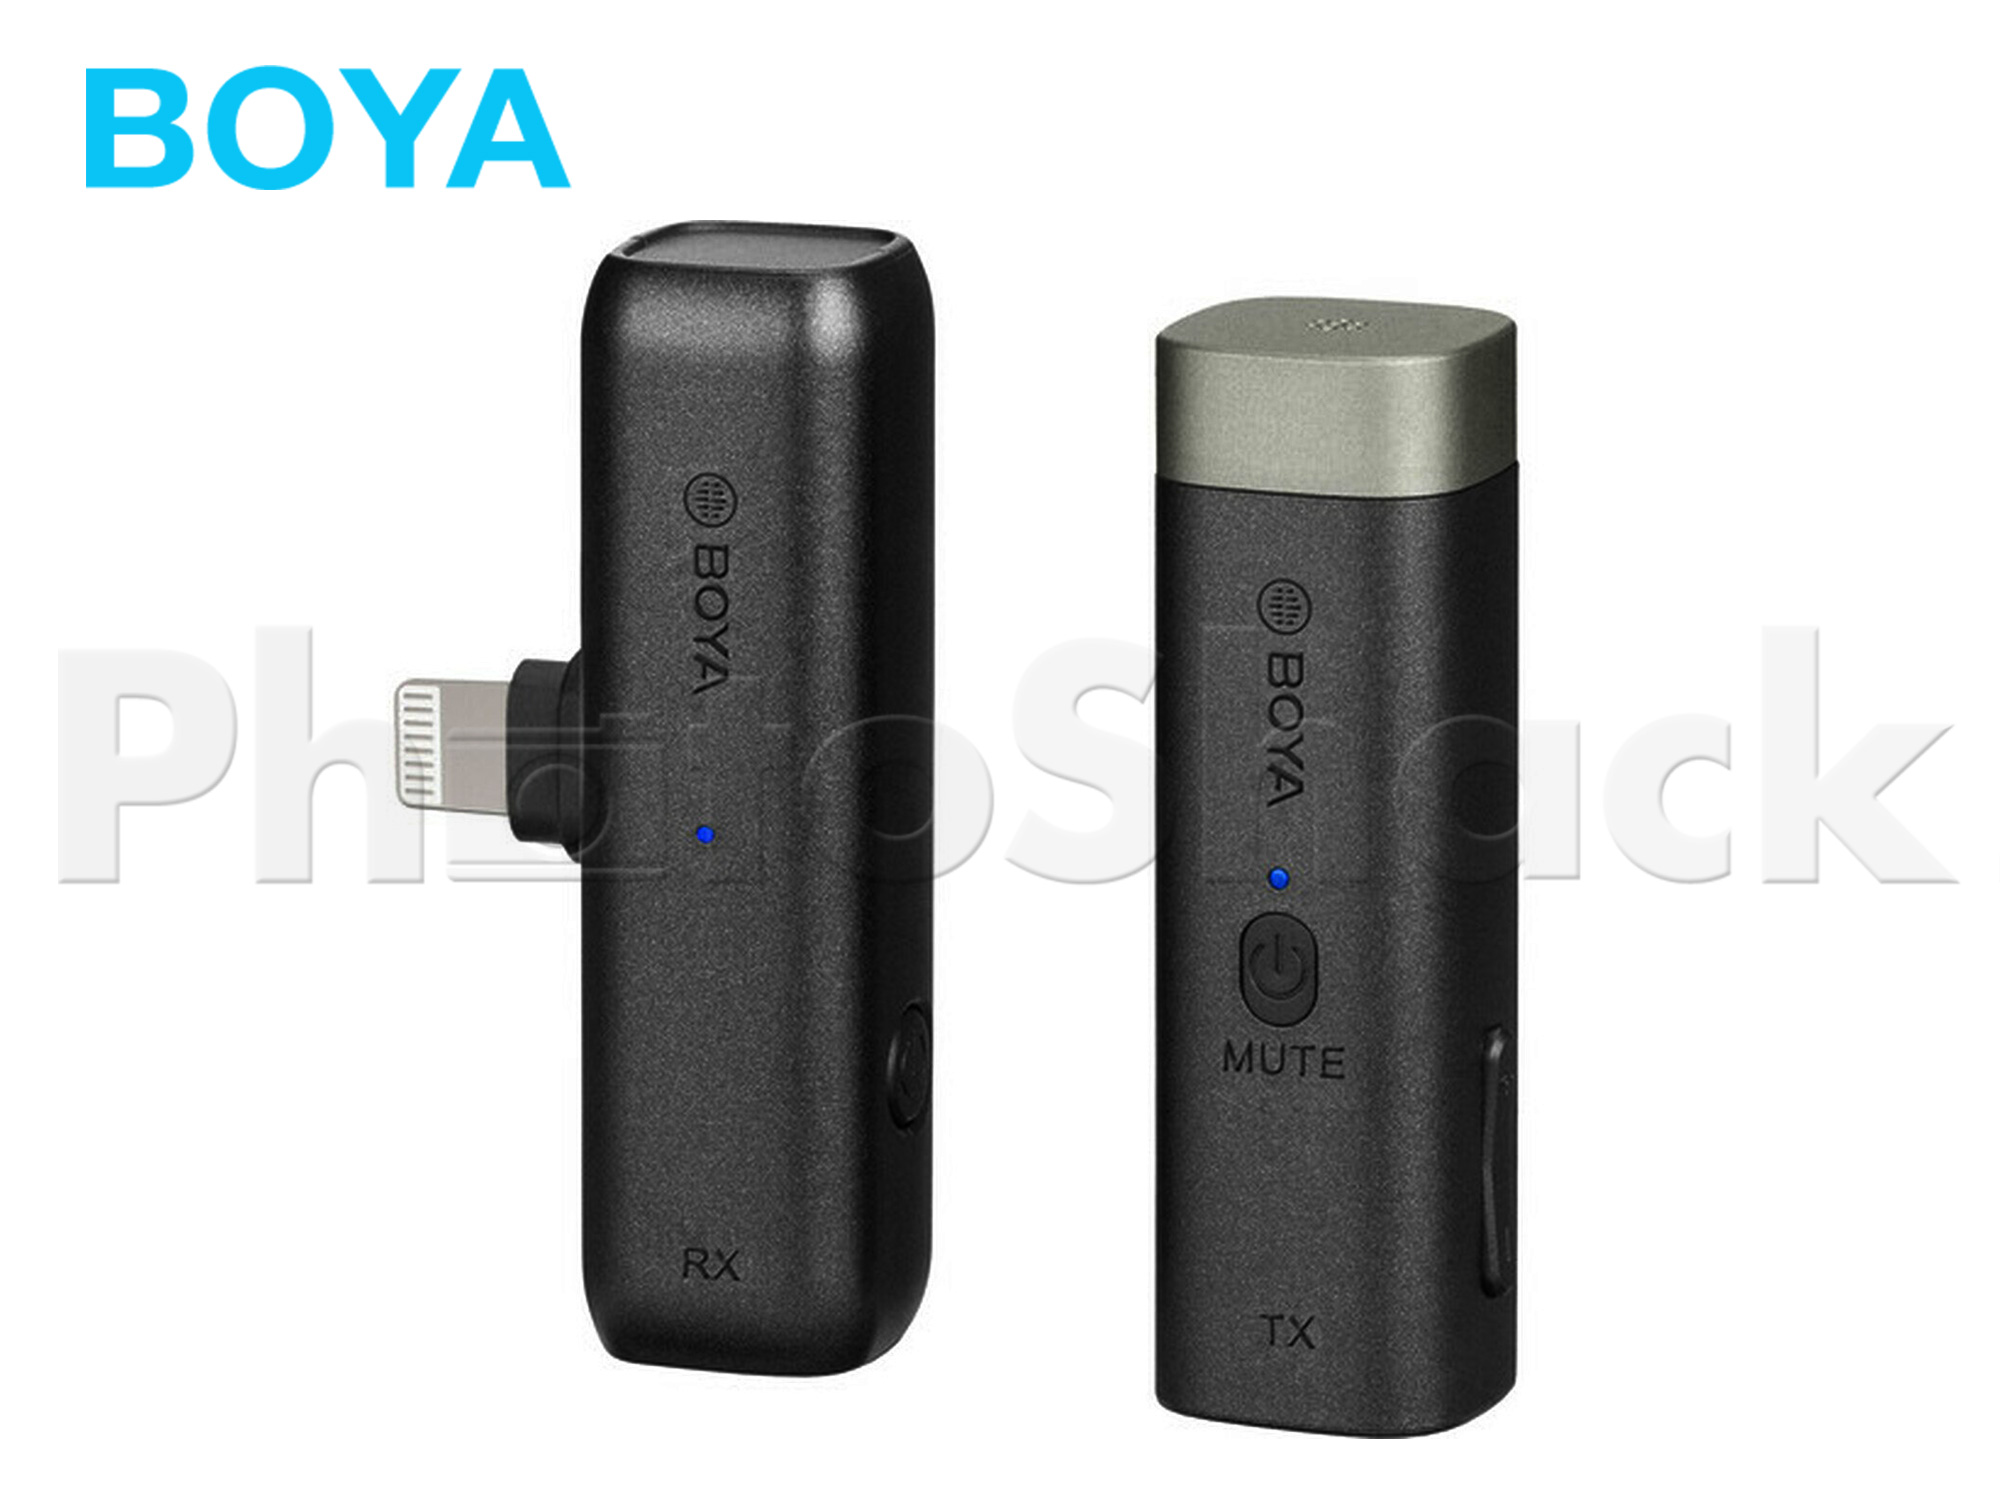 BOYA BY-WM3D Digital True-Wireless Microphone System for iOS Devices